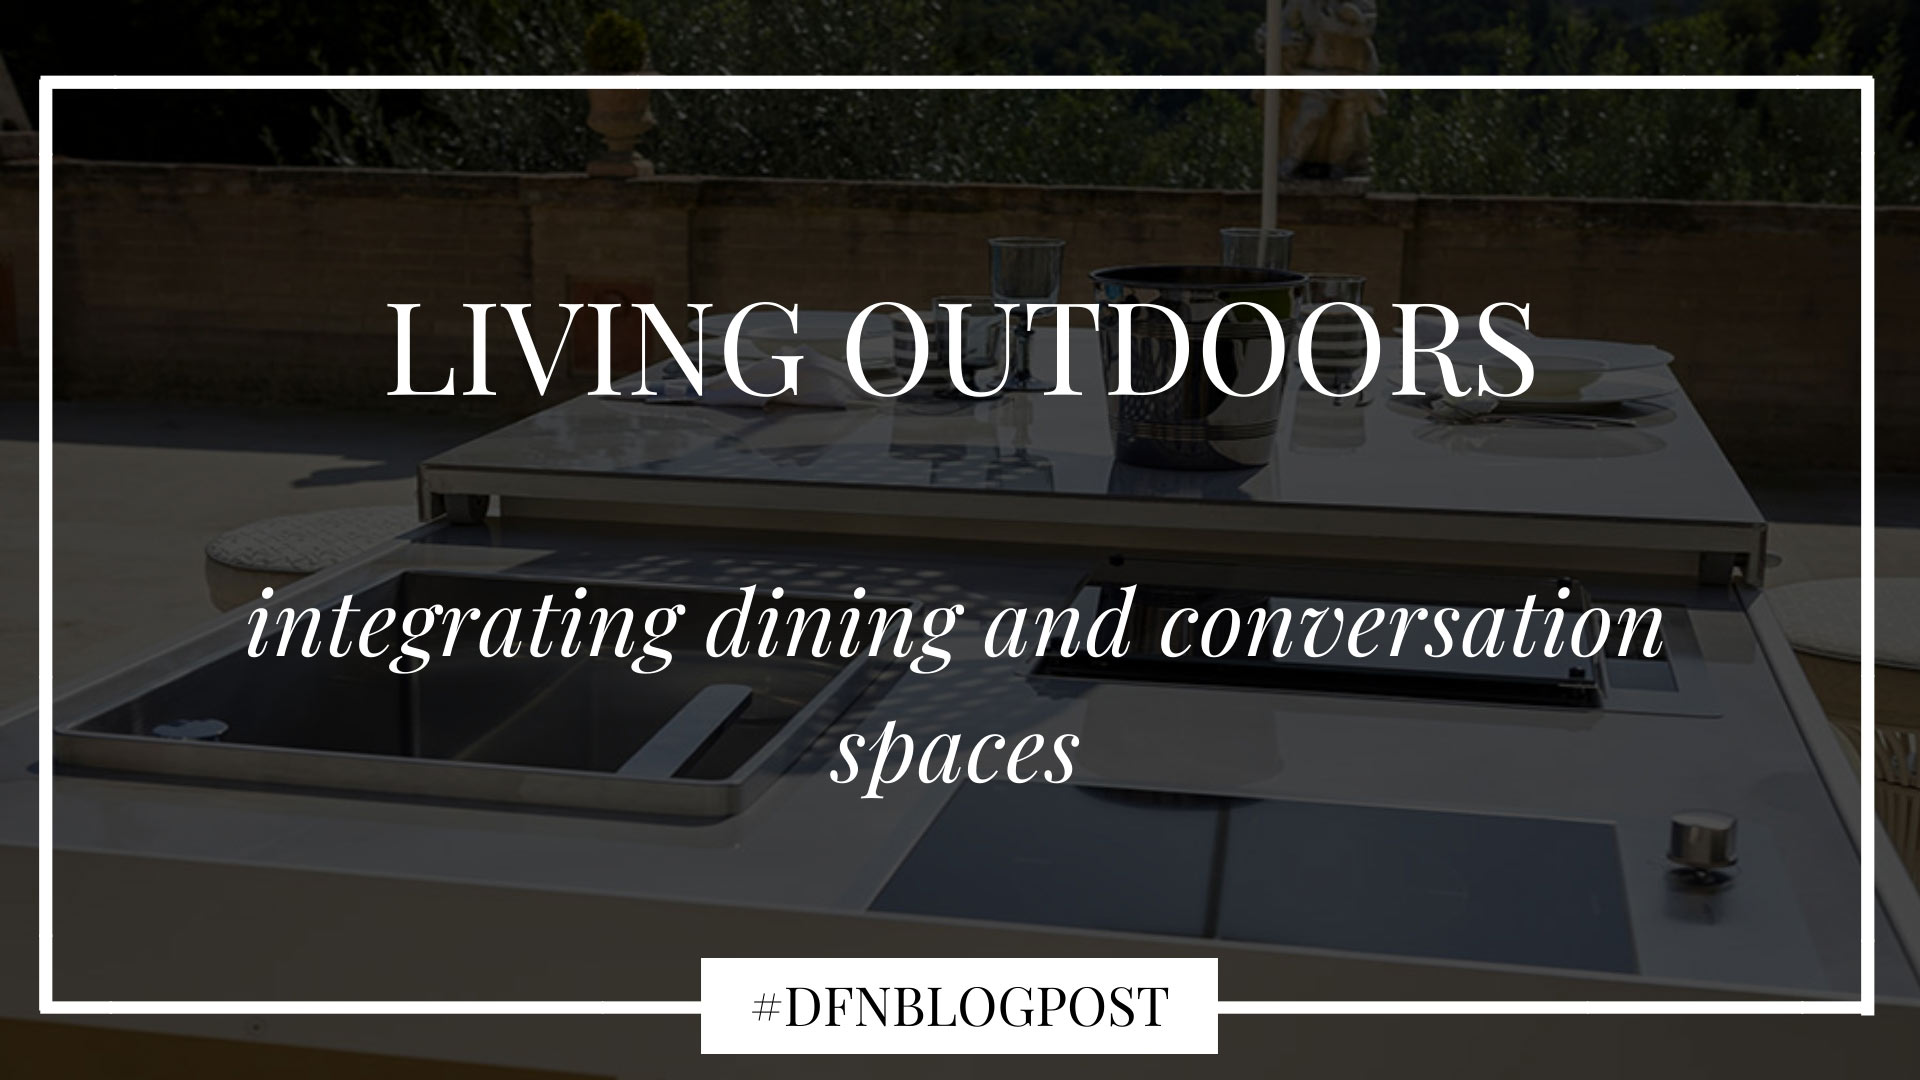 Living outdoors: integrating dining and conversation spaces 1